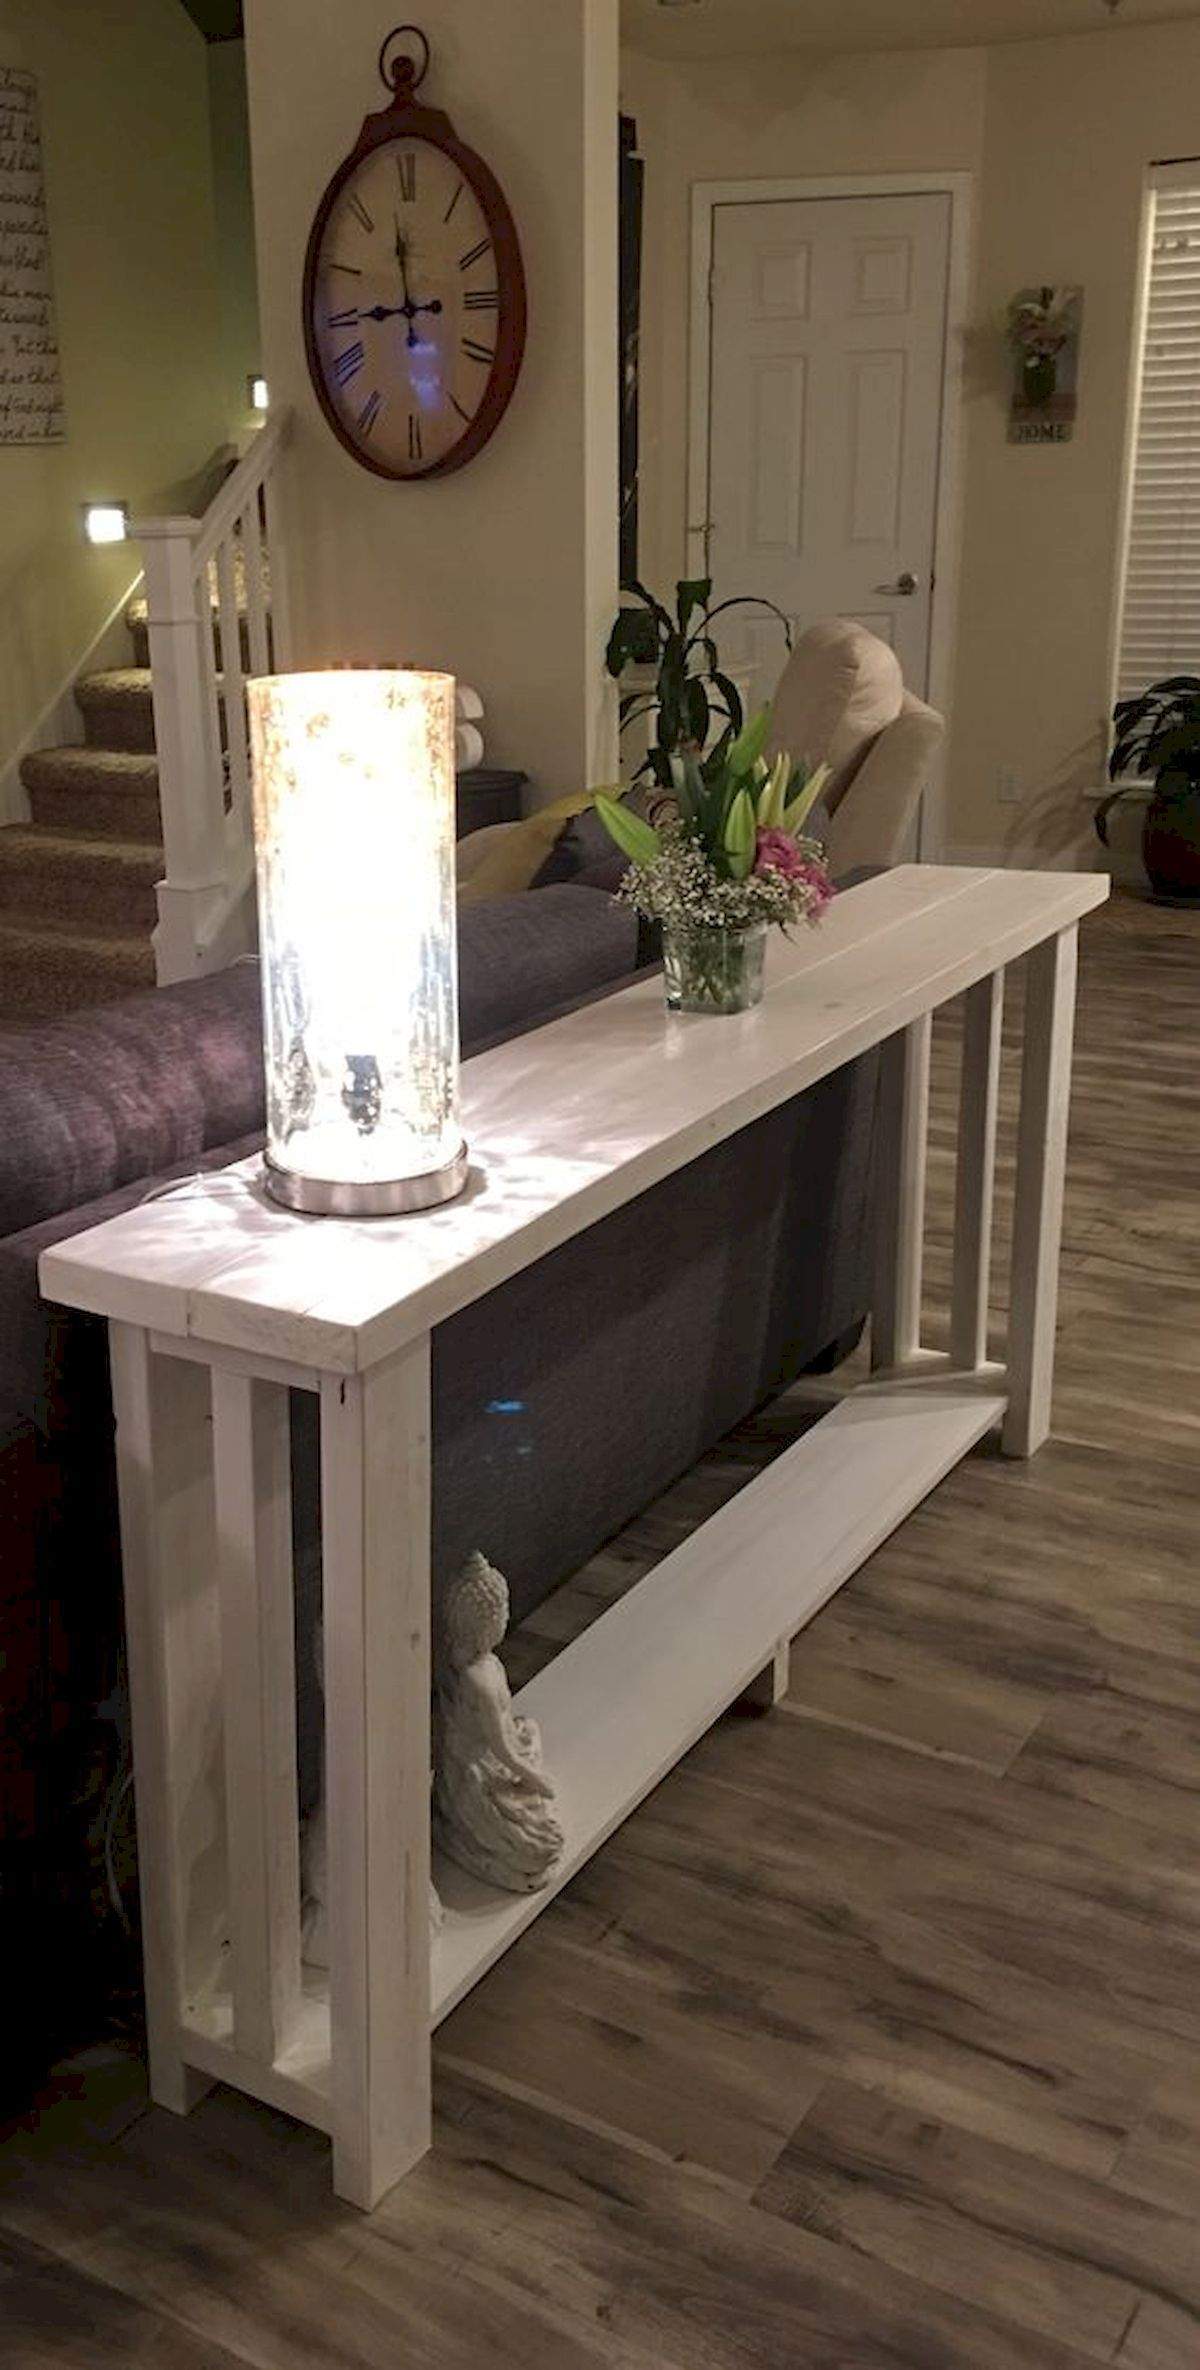 60 Creative Diy Projects Furniture Living Room Table Design Ideas 60 Creative DIY Projects Furniture Living Room Table Design Ideas Diy Decorating diy living room ideas